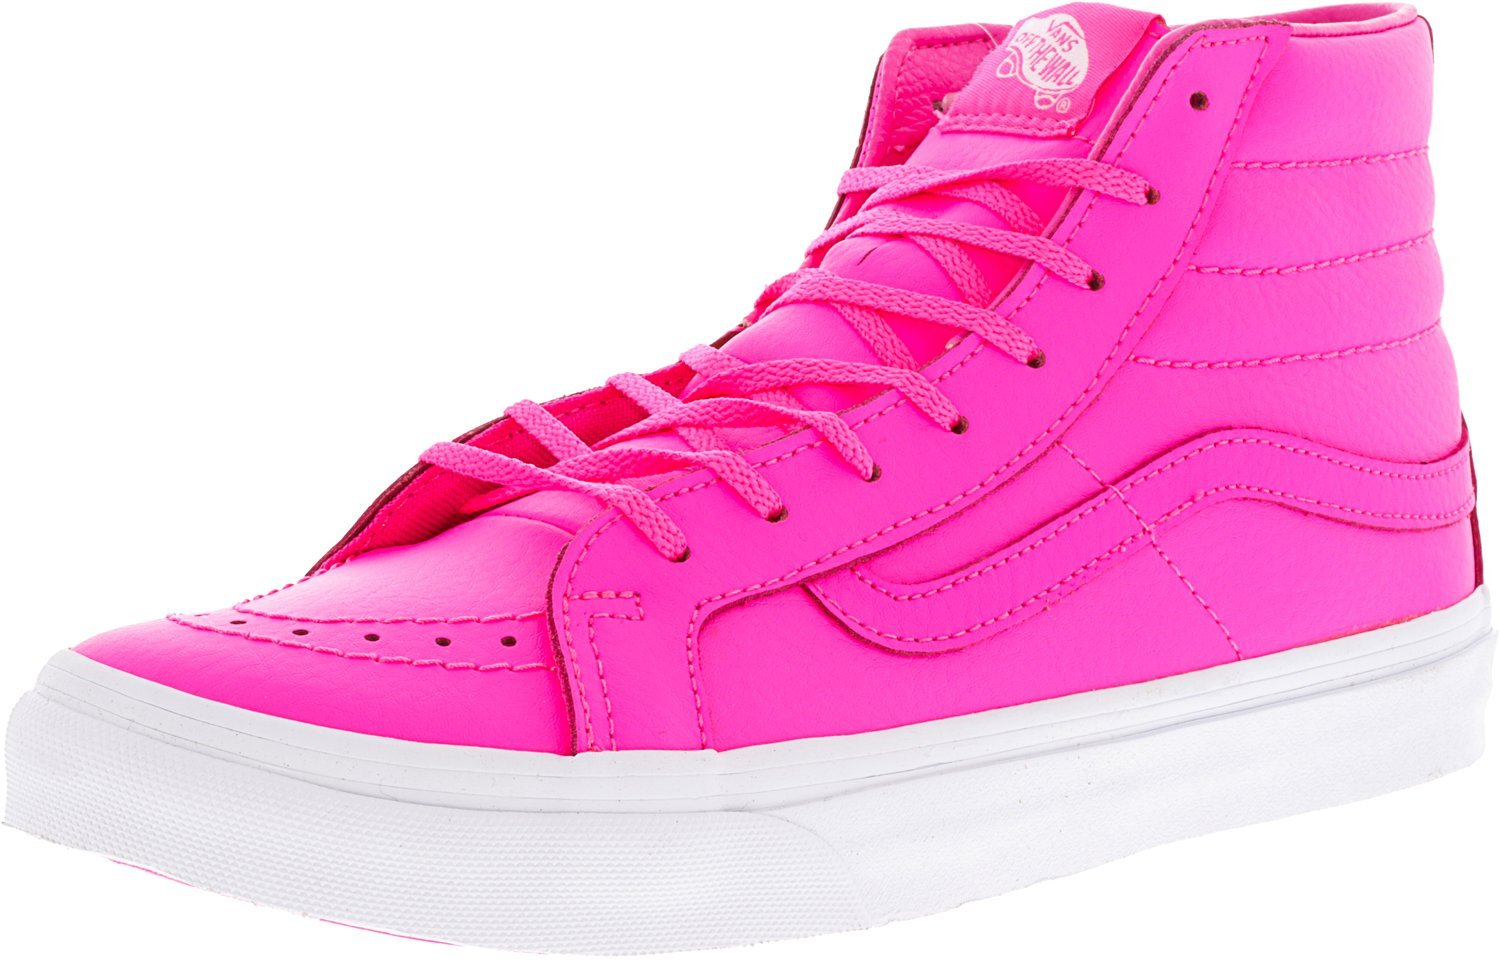 Vans Unisex Perf Leather Sk8-Hi Slim Zip True White Sneaker - 7.5 B01I2CL6FK 9.5-Women/8-Men Medium (D, M) US|Neon Pink